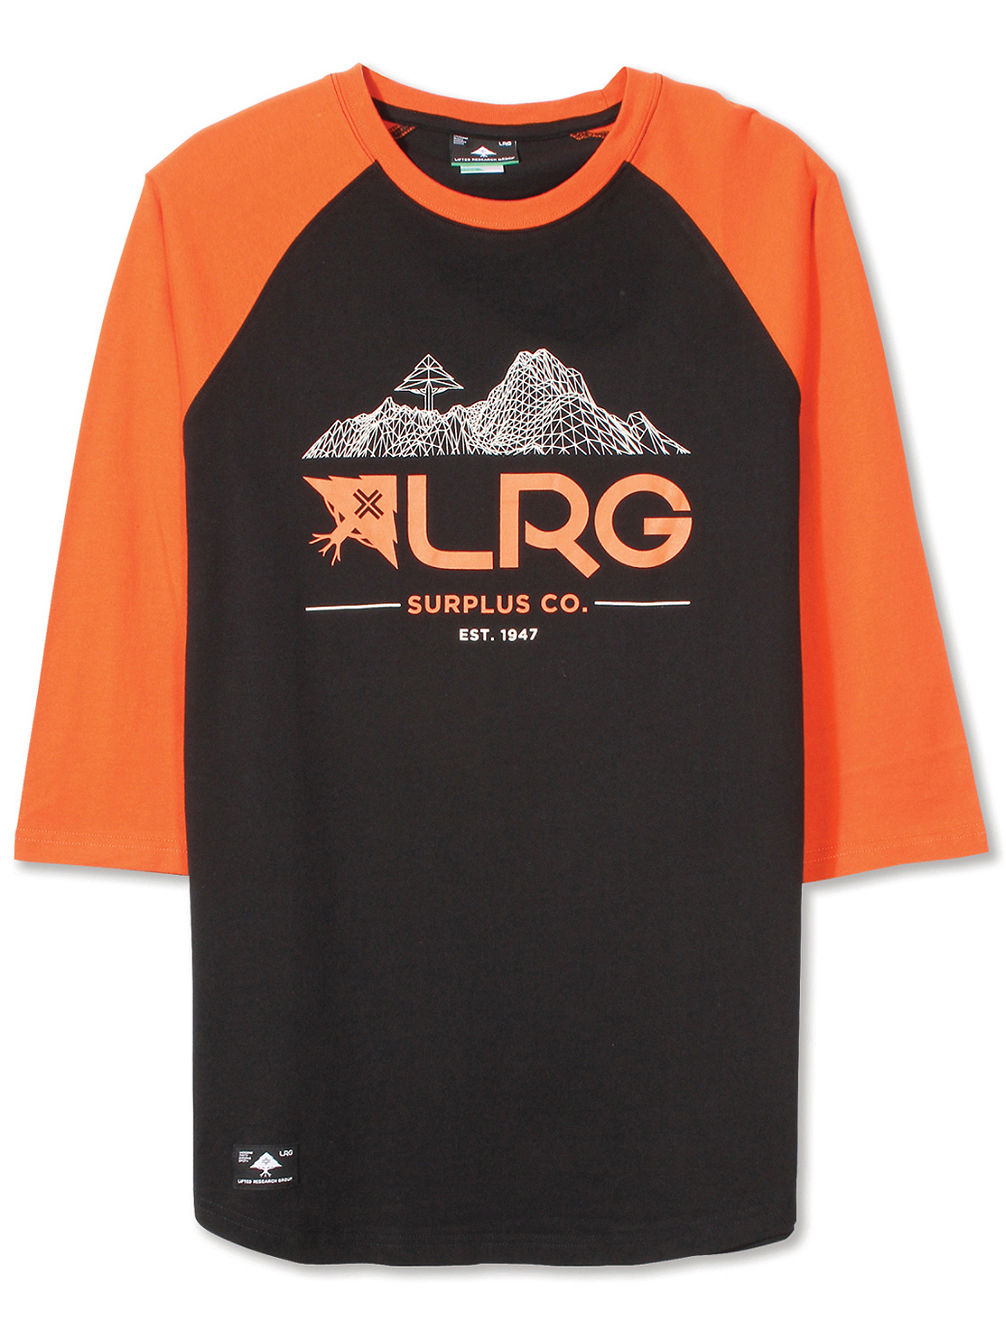 Buy lrg surplus co 3 4 t shirt ls online at blue for Online tee shirt companies